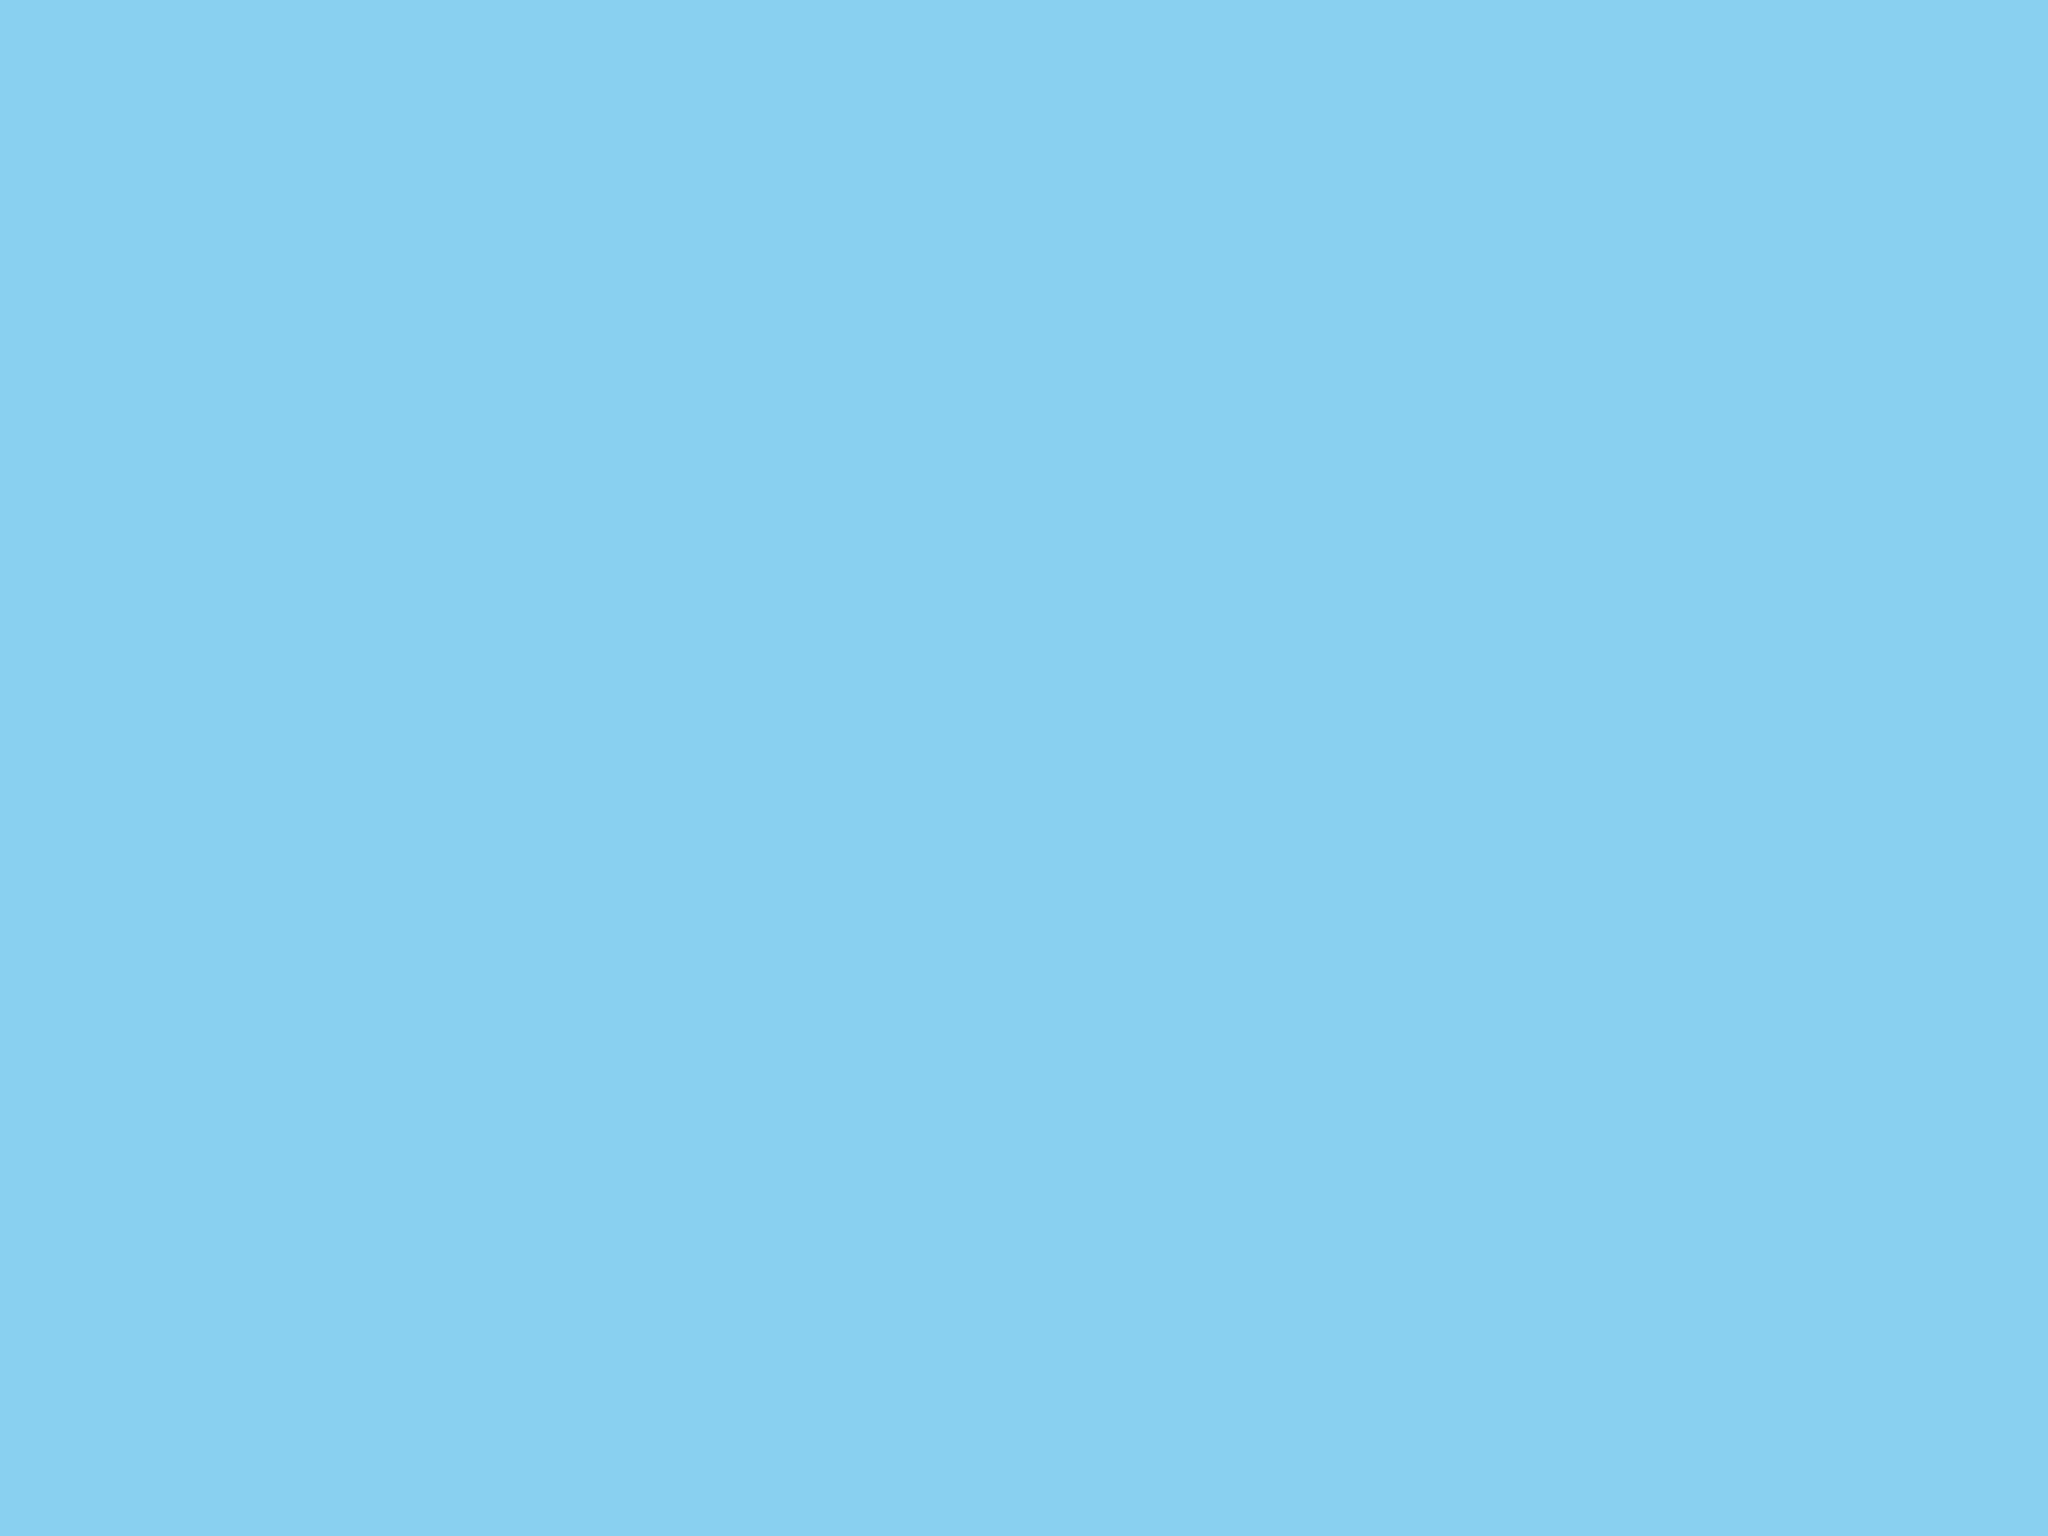 2048x1536 Baby Blue Solid Color Background